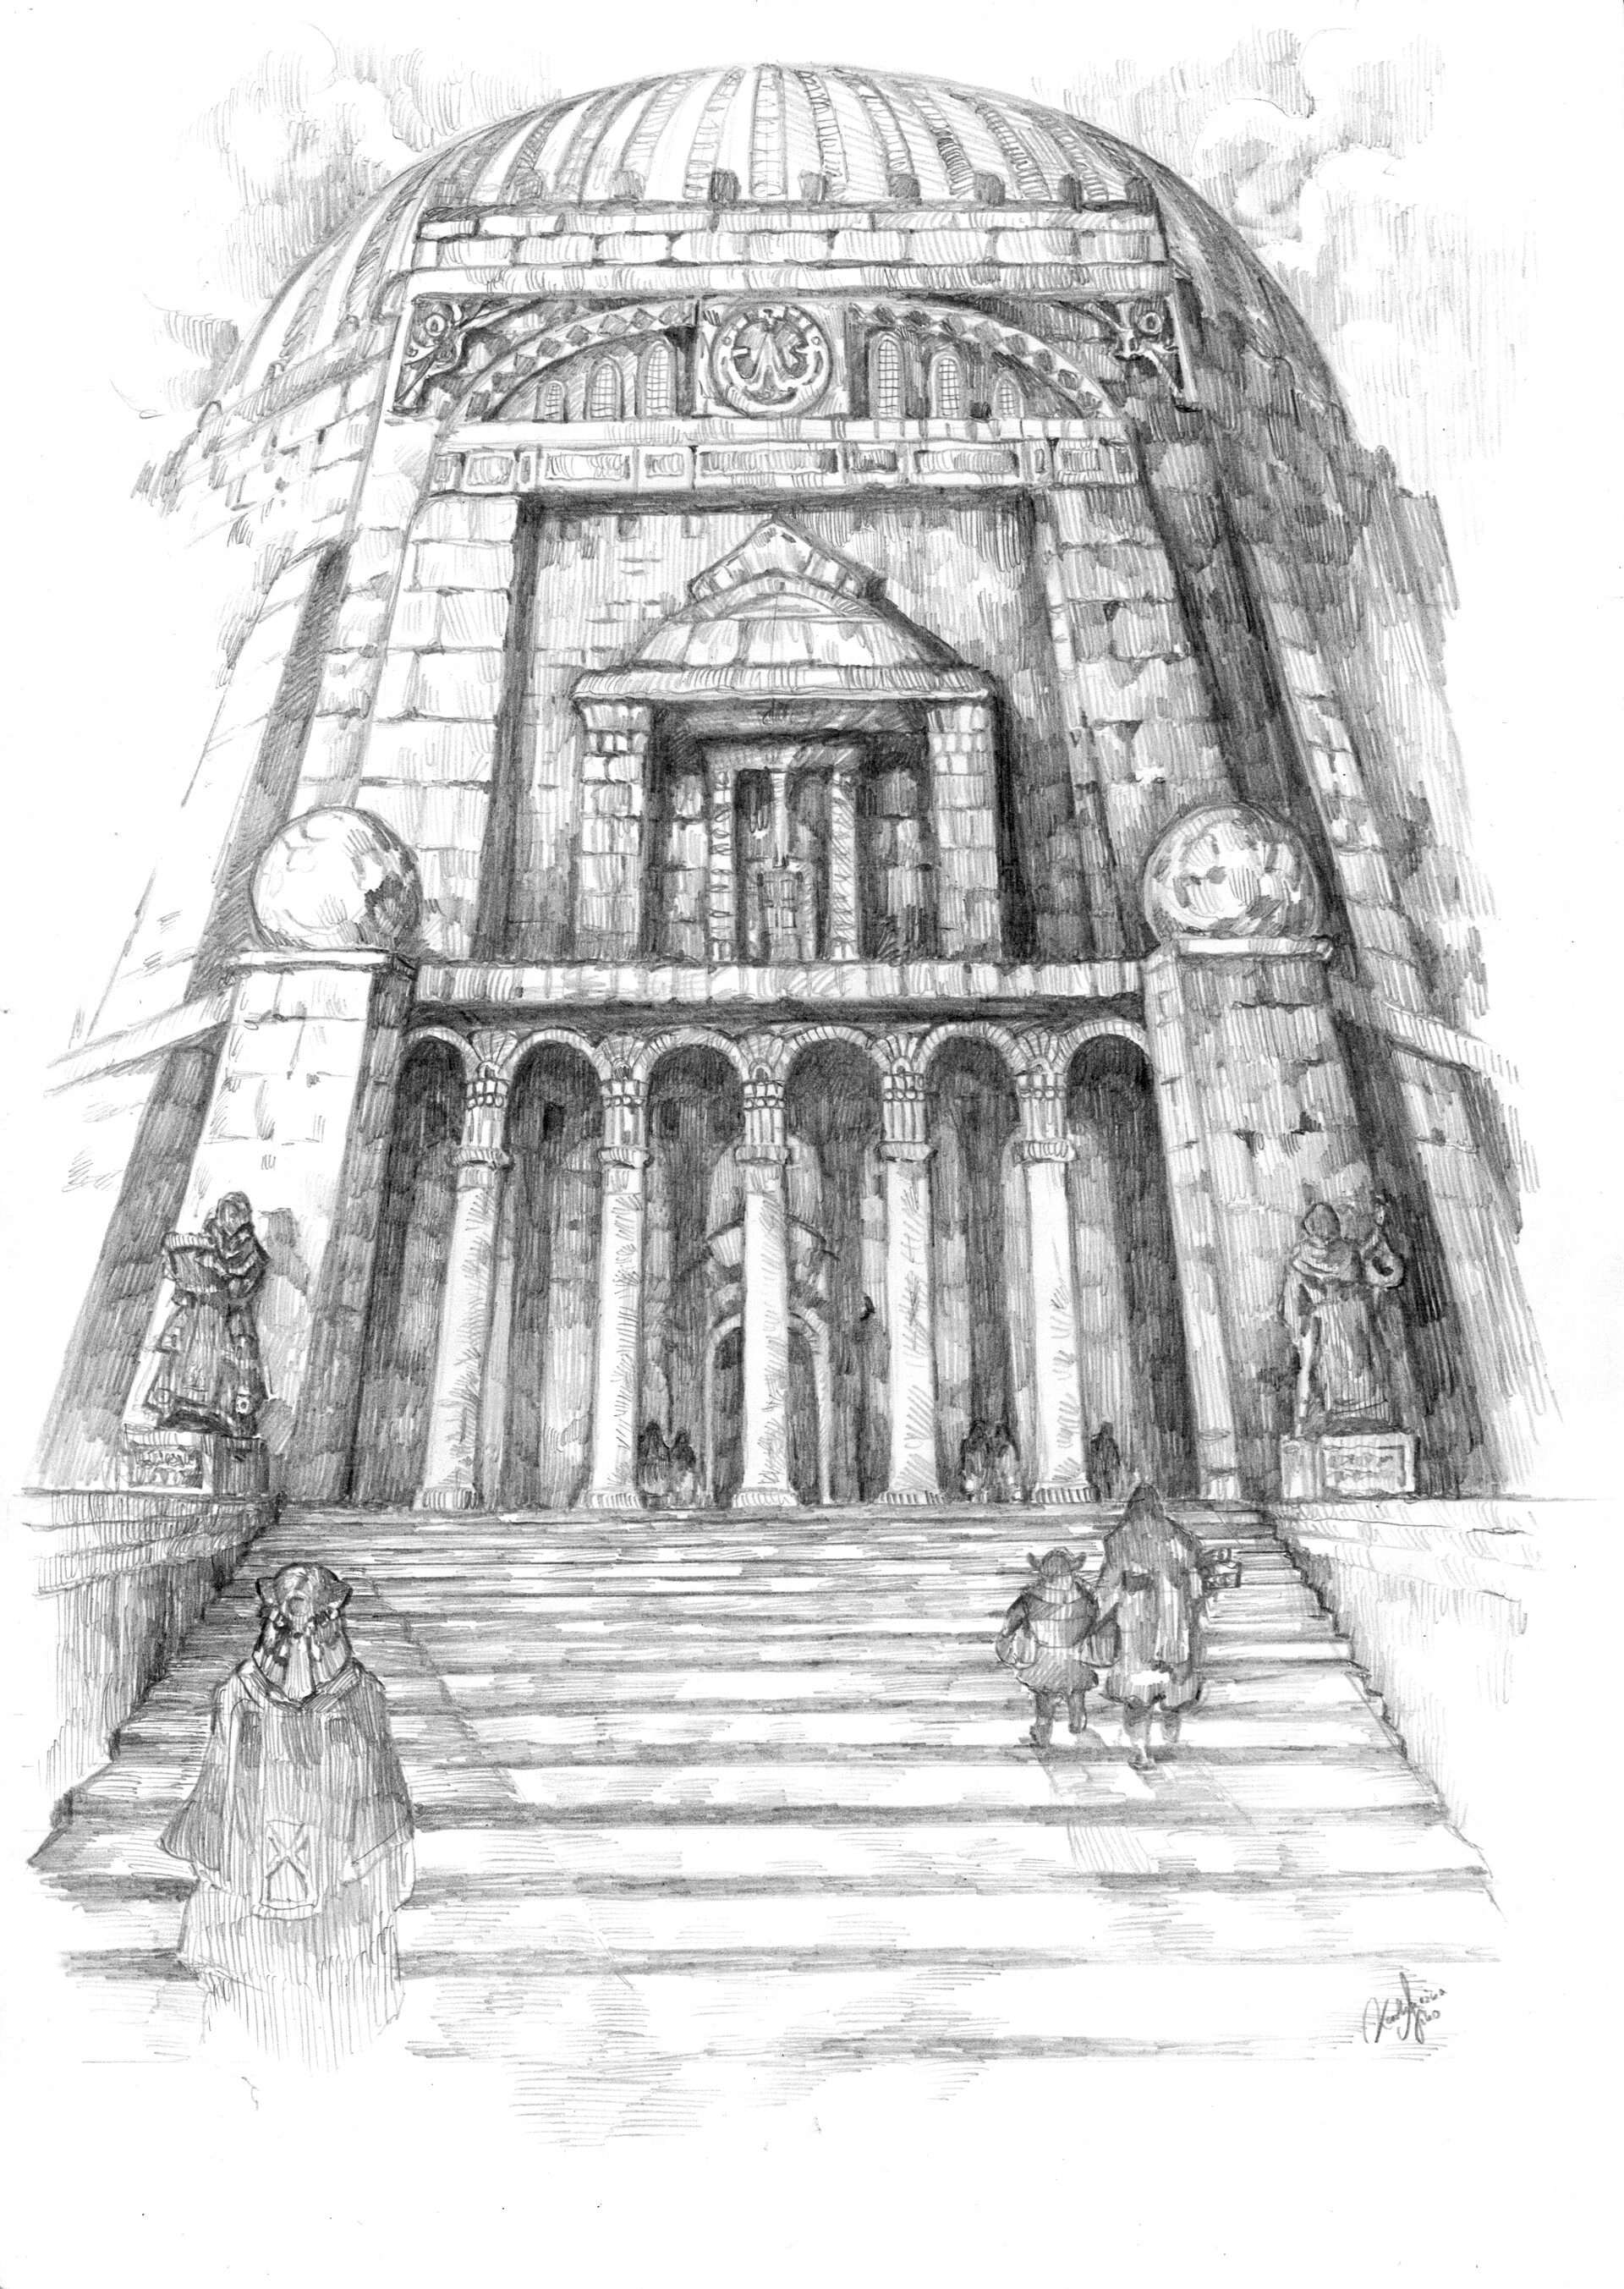 EARTHDAWN: The bank of commerce